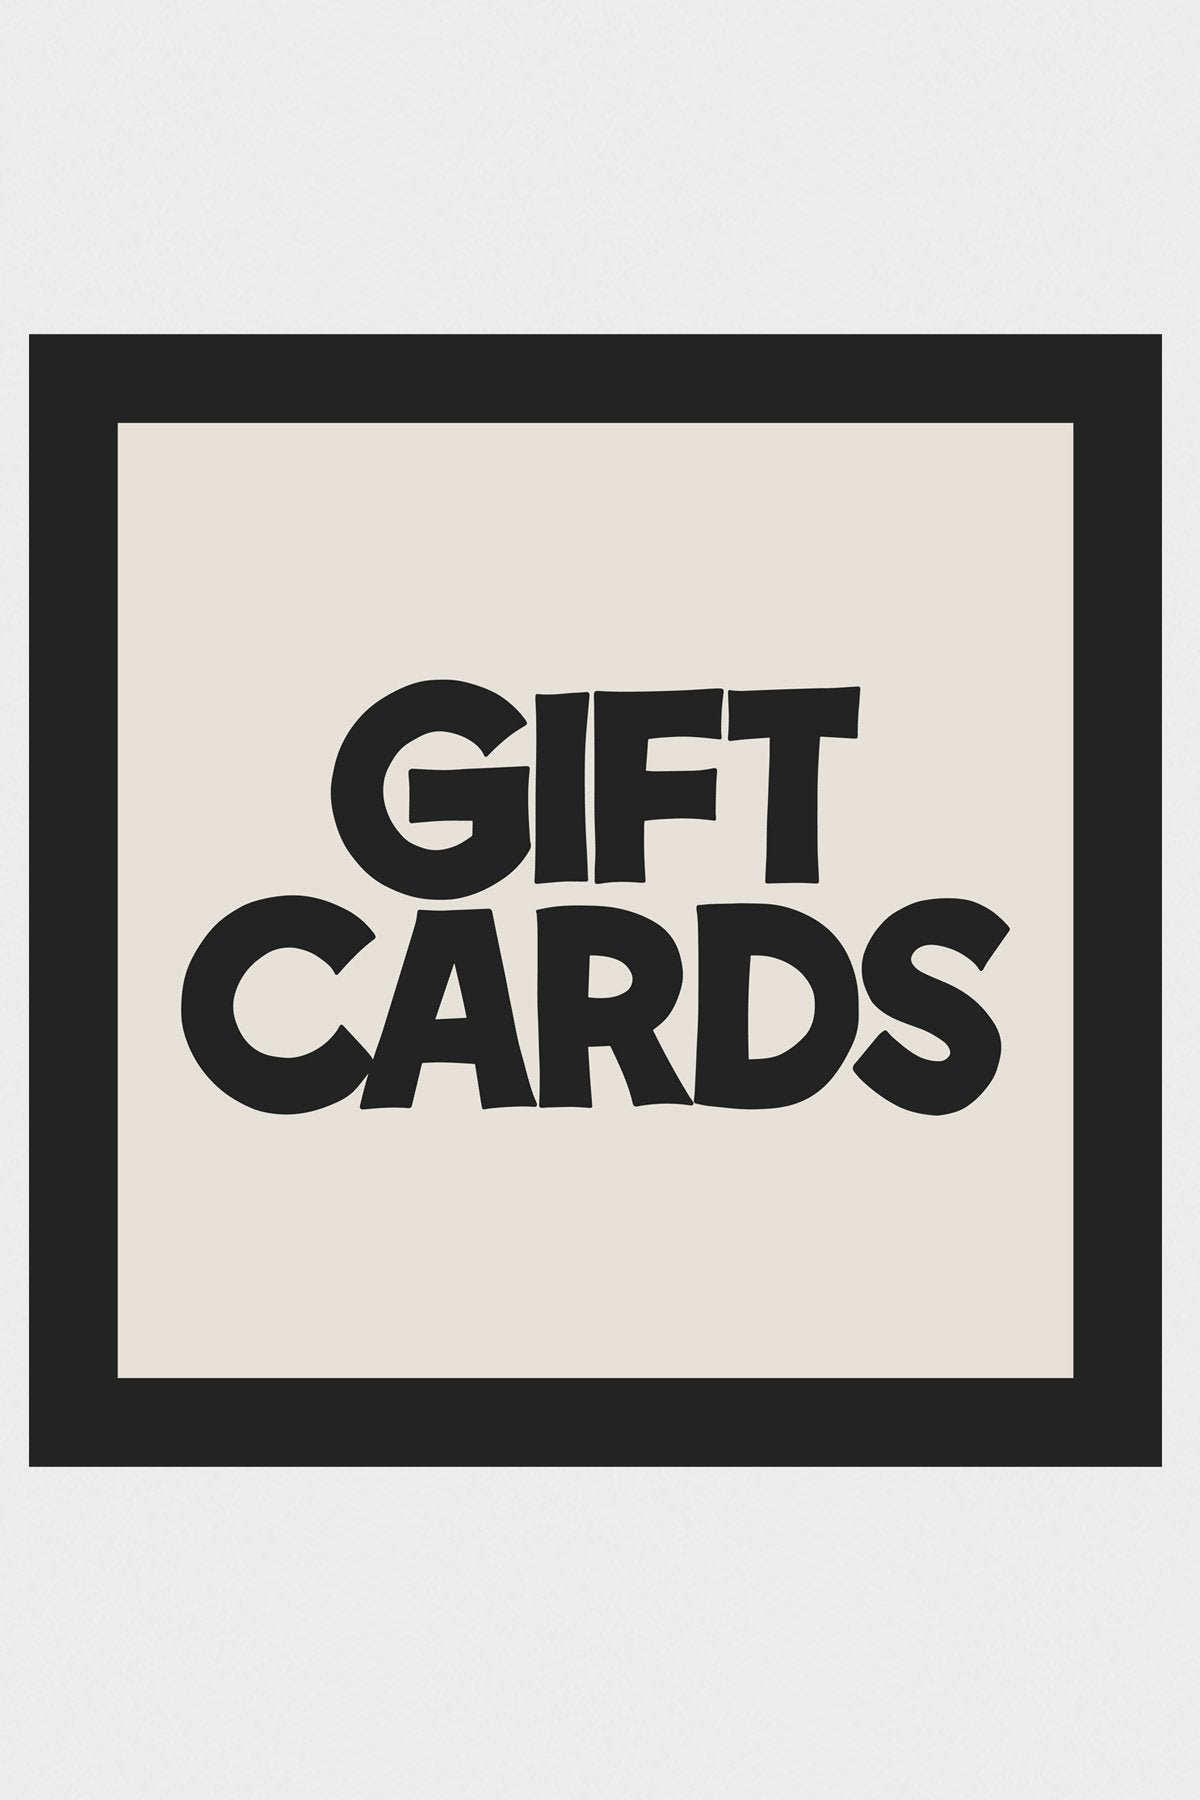 Canoe Club - $1000 Gift Card - Canoe Club